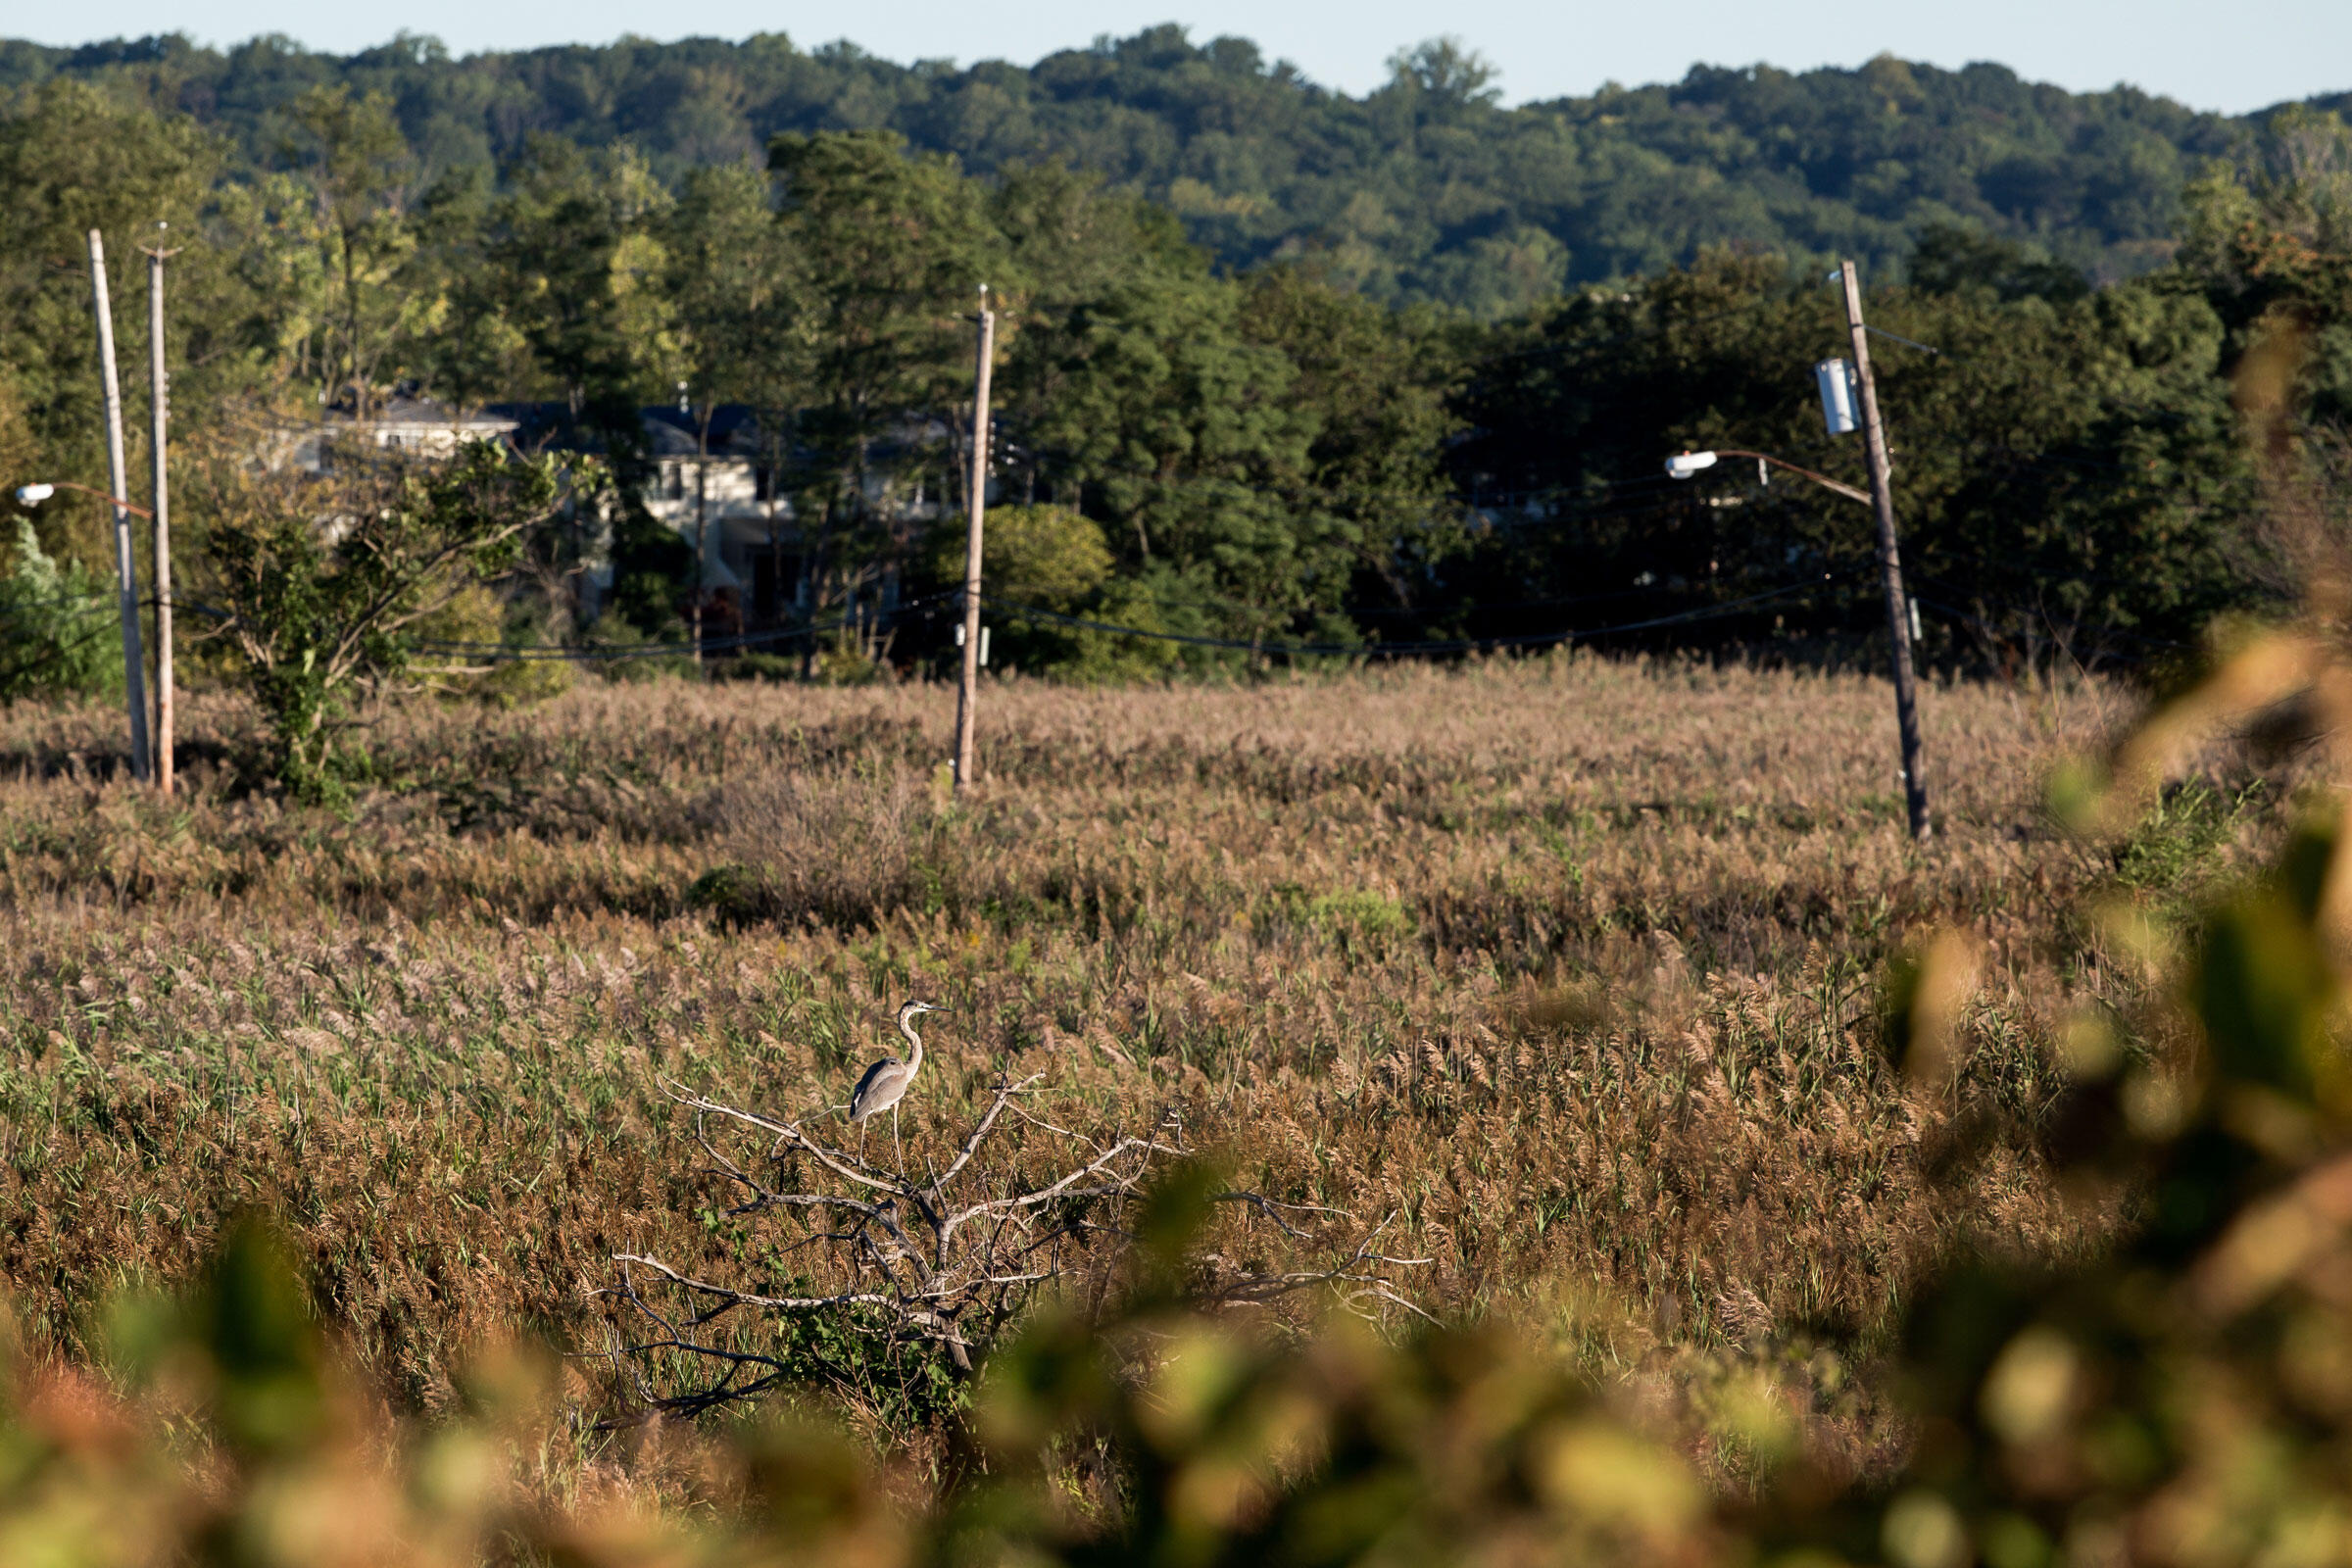 A Great Blue Heron overlooks the marshland surrounding Kissam Avenue. The telephone poles now trace empty lots overgrown by nature. September 15, 2016. Hillary Eggers